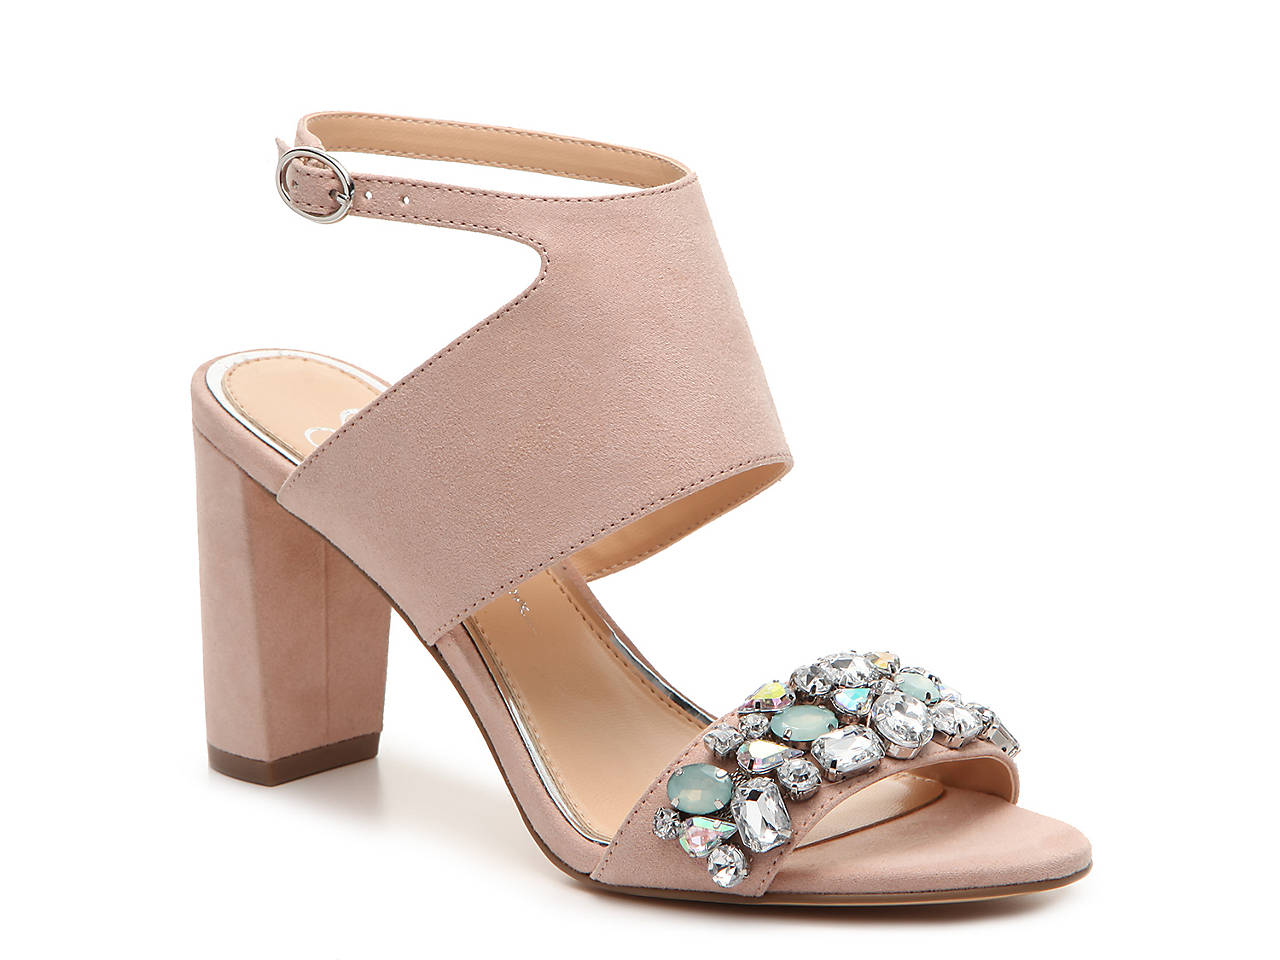 ee8b6bd0407 Jessica Simpson Jella Sandal Women s Shoes